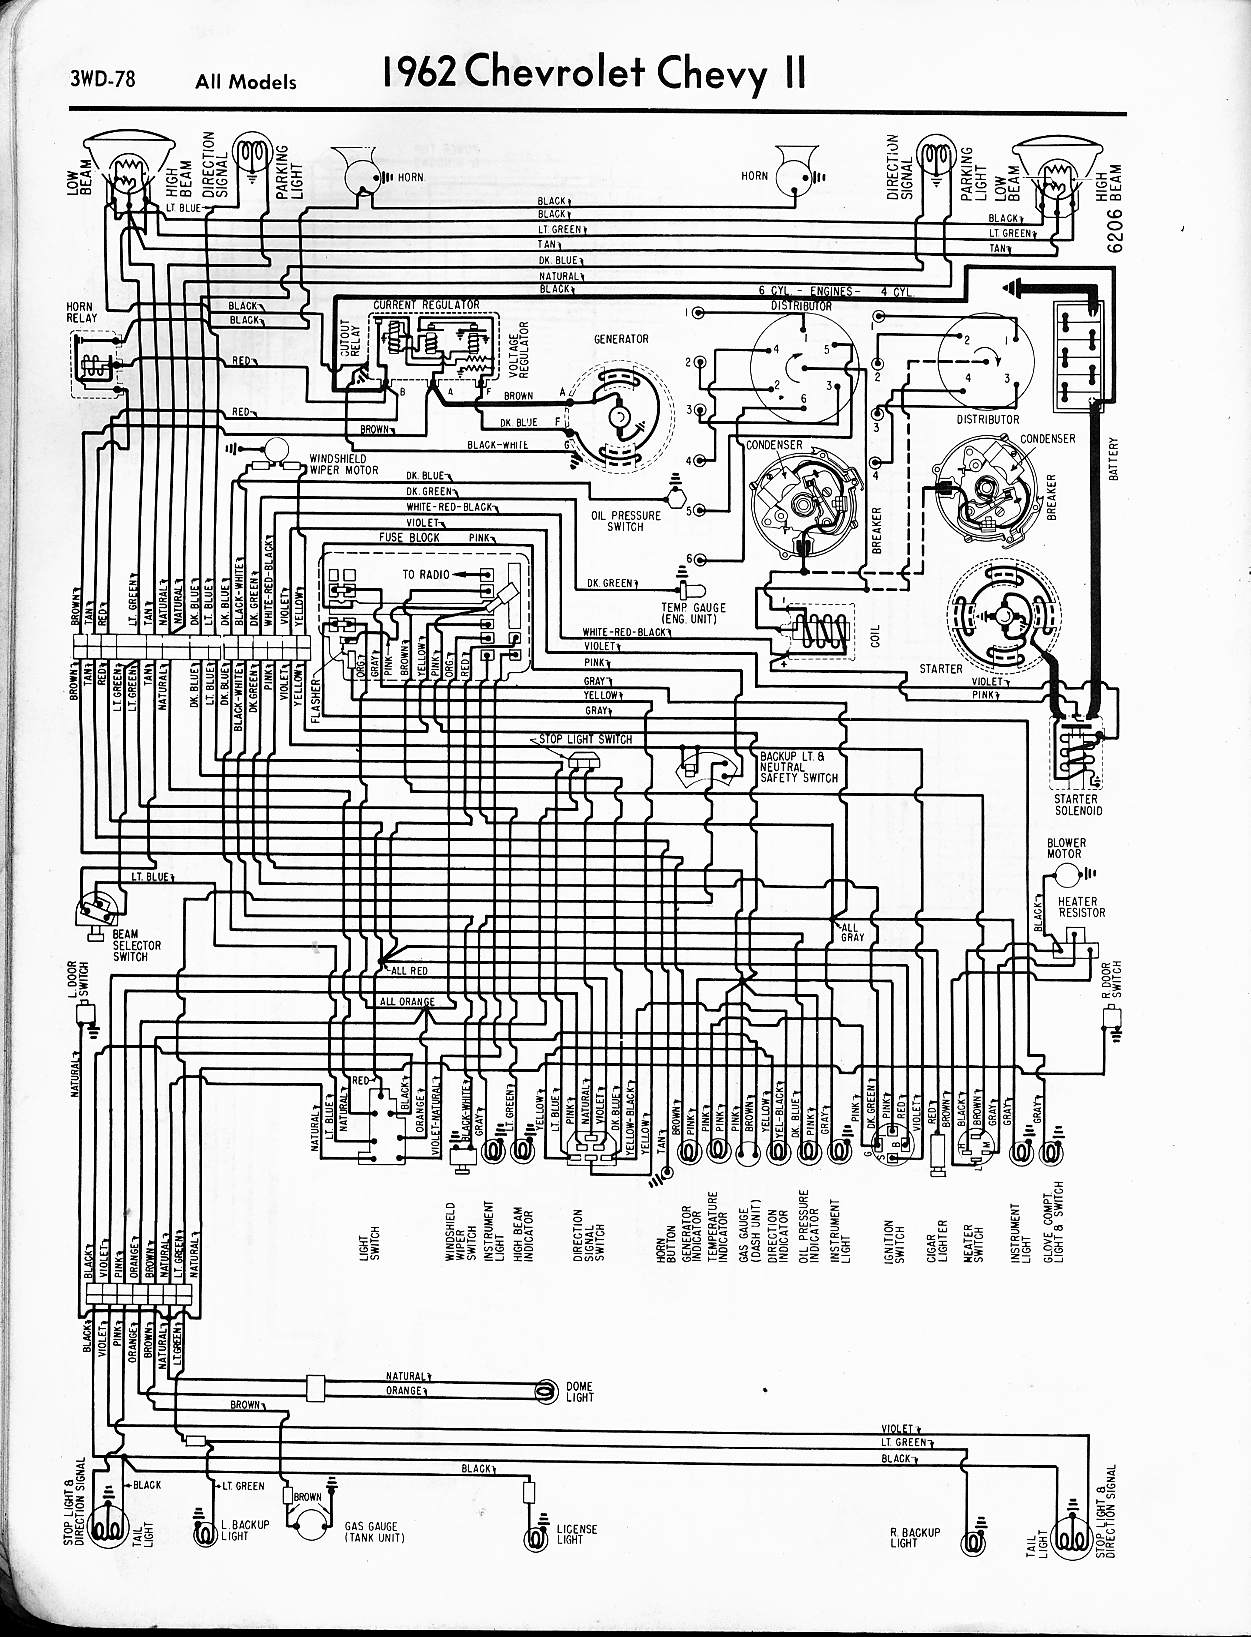 1978 C10 Wiring Diagram | Wiring Diagram  Chevrolet Blazer Steering Column Wiring Diagram on turn signal wiring diagram, chevrolet truck steering column diagram, chevy turn signal diagram, gm steering column parts diagram, chevrolet steering column connectors, 85 suburban steering column diagram, chevrolet steering column exploded view, chevrolet tilt steering column diagram,